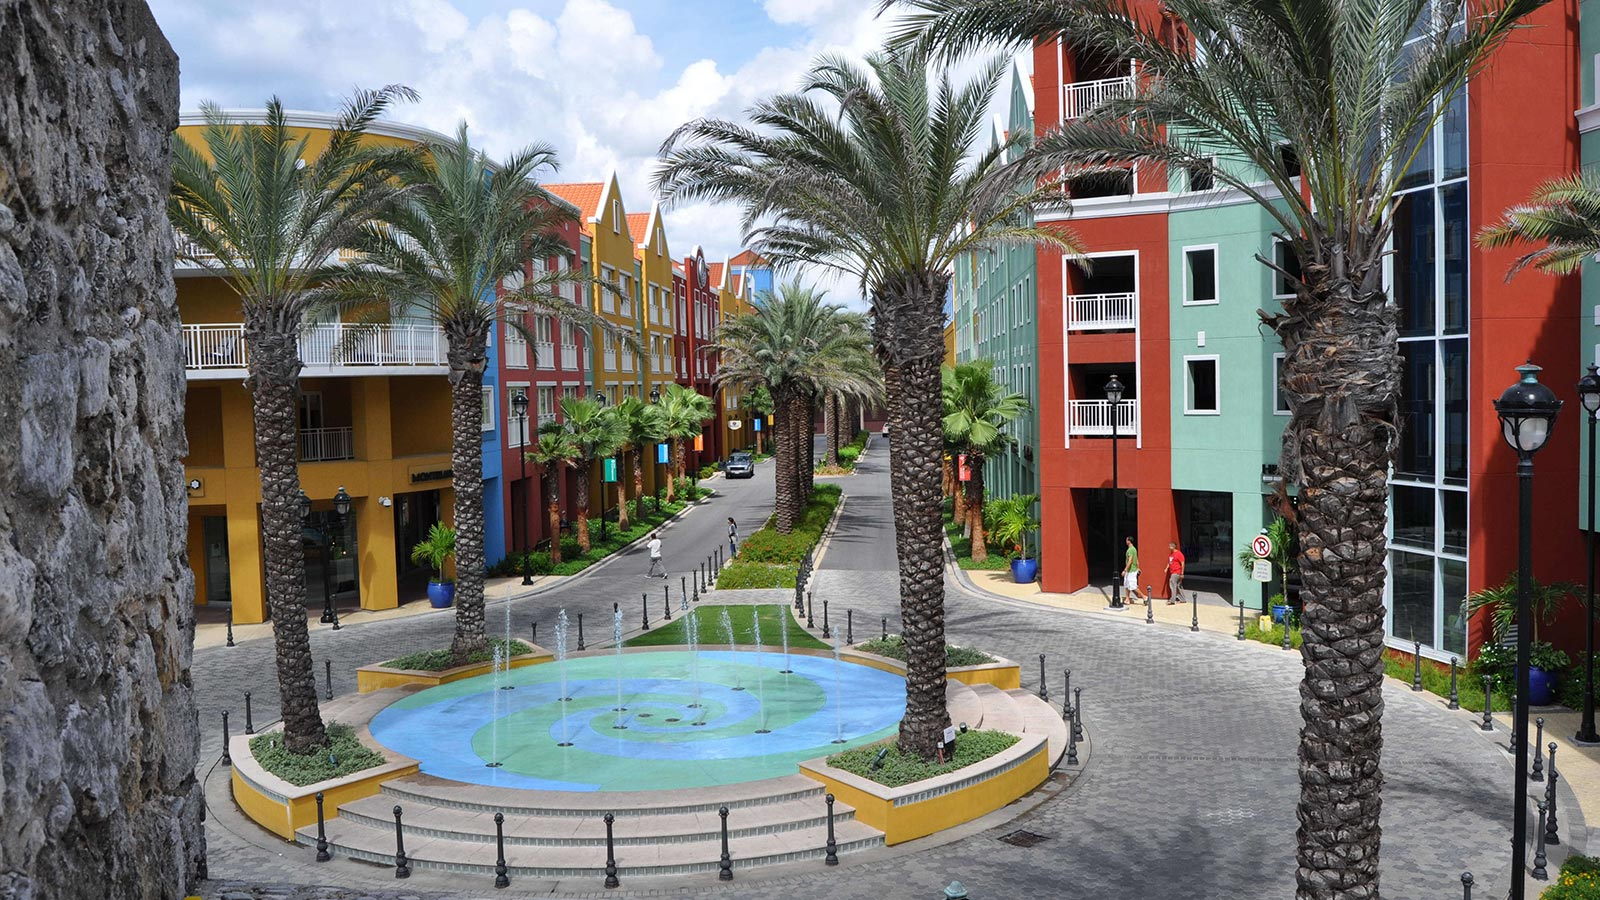 central plaza lined with colorful buildings